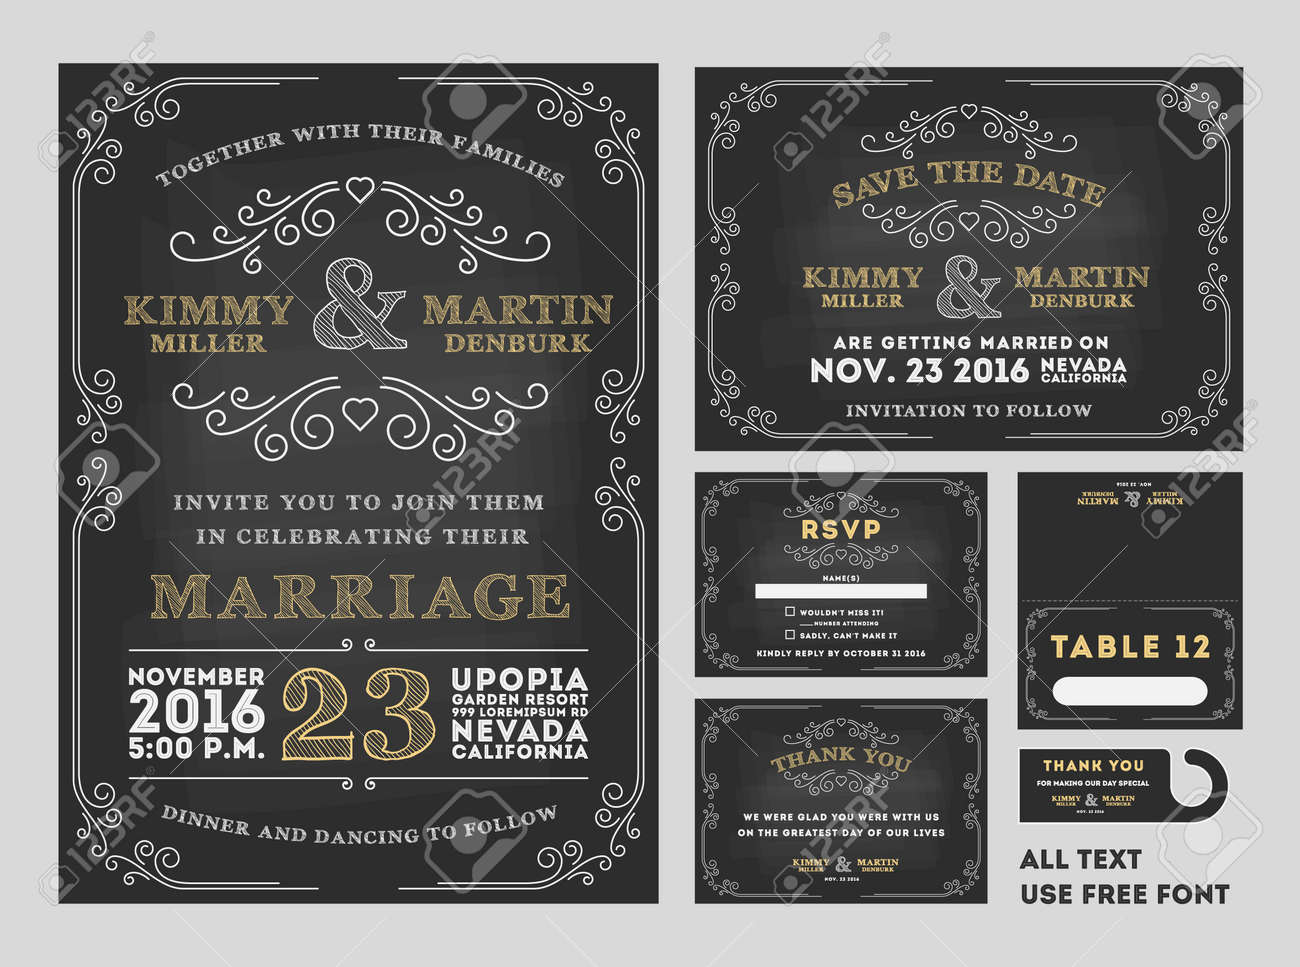 Vintage Chalkboard Wedding Invitations design sets include Invitation card, Save the date card, RSVP card, Thank you card, Table number, Gift tags, Place cards, Save the date door hanger Stock Vector - 43615603